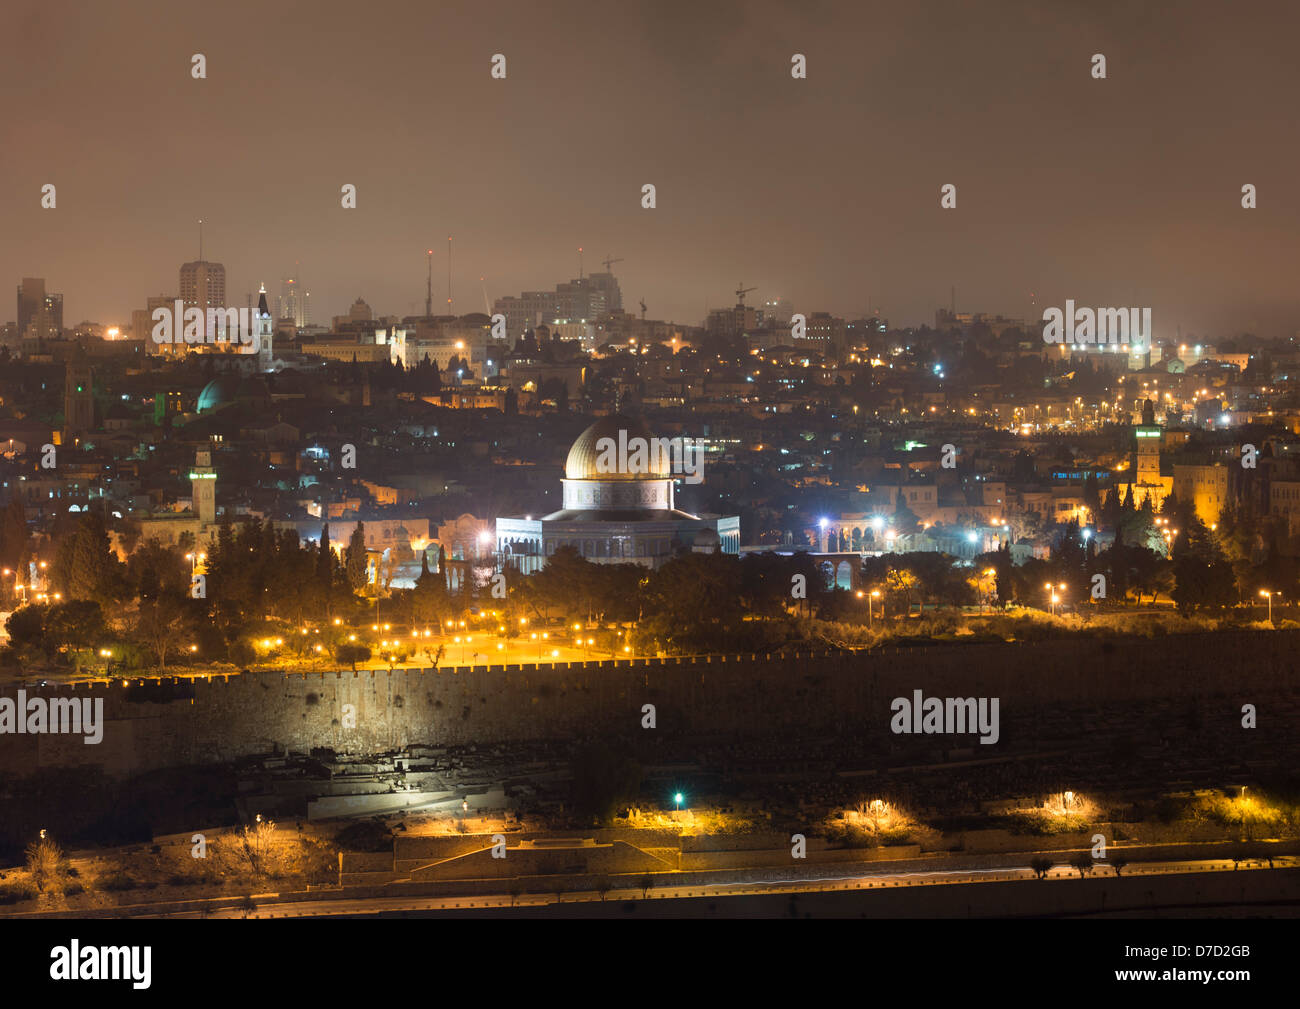 The Jerusalem skyline at night showing the golden dome of the Islamic Dome of the Rock, viewed from the Mount of - Stock Image